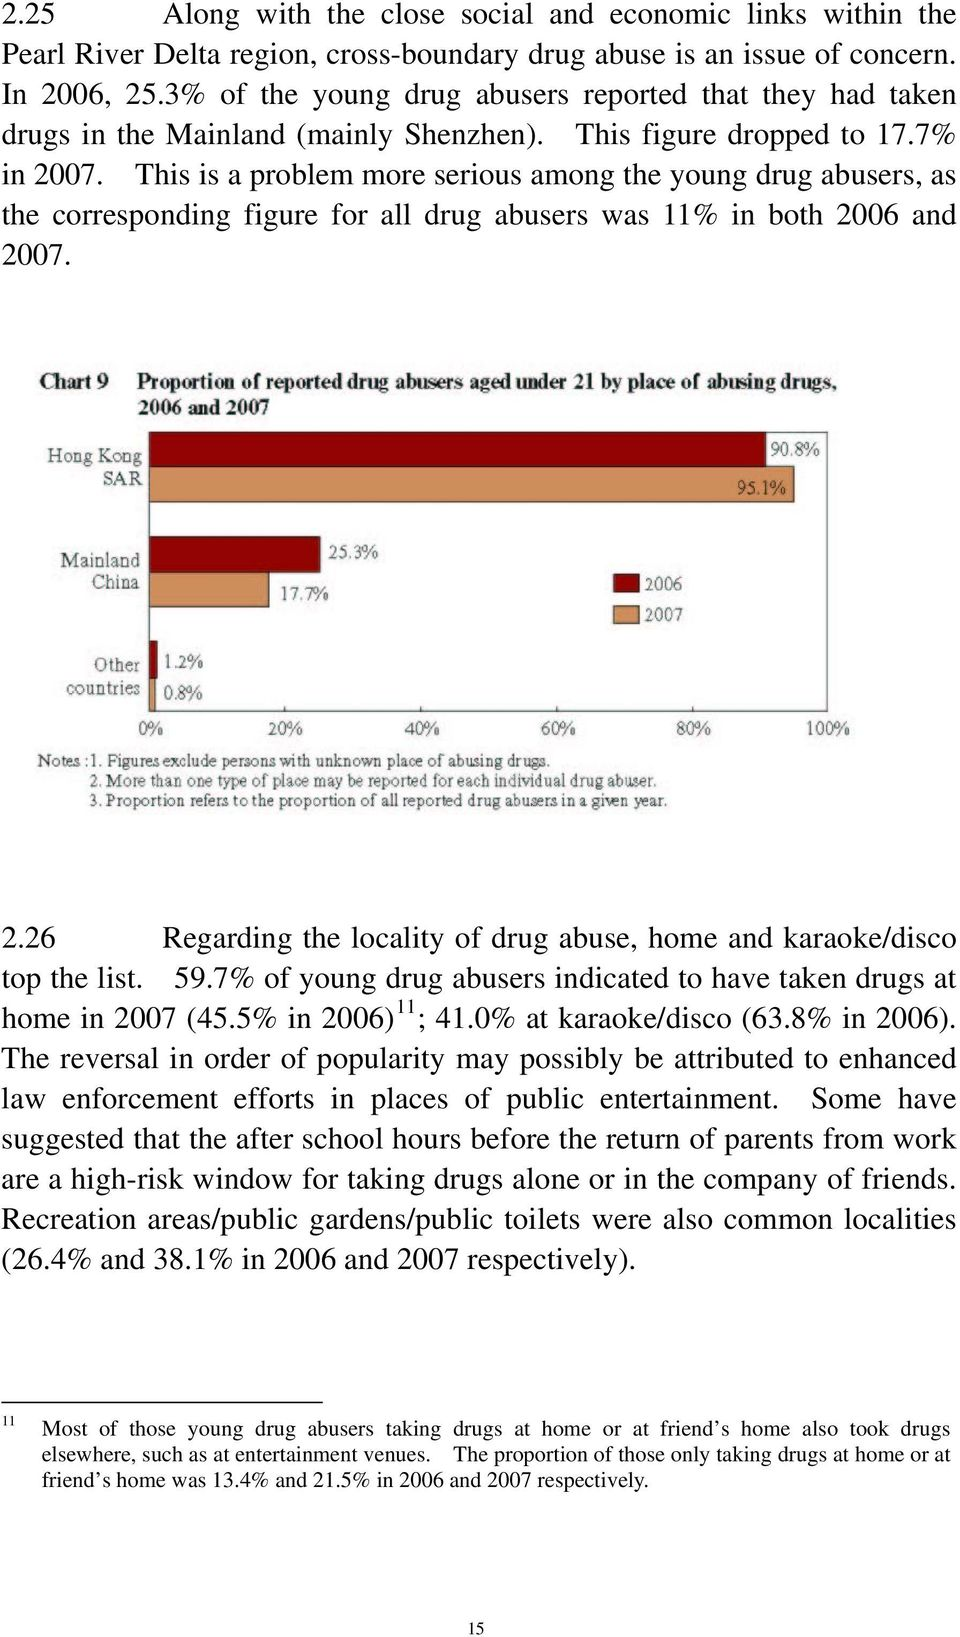 This is a problem more serious among the young drug abusers, as the corresponding figure for all drug abusers was 11% in both 20